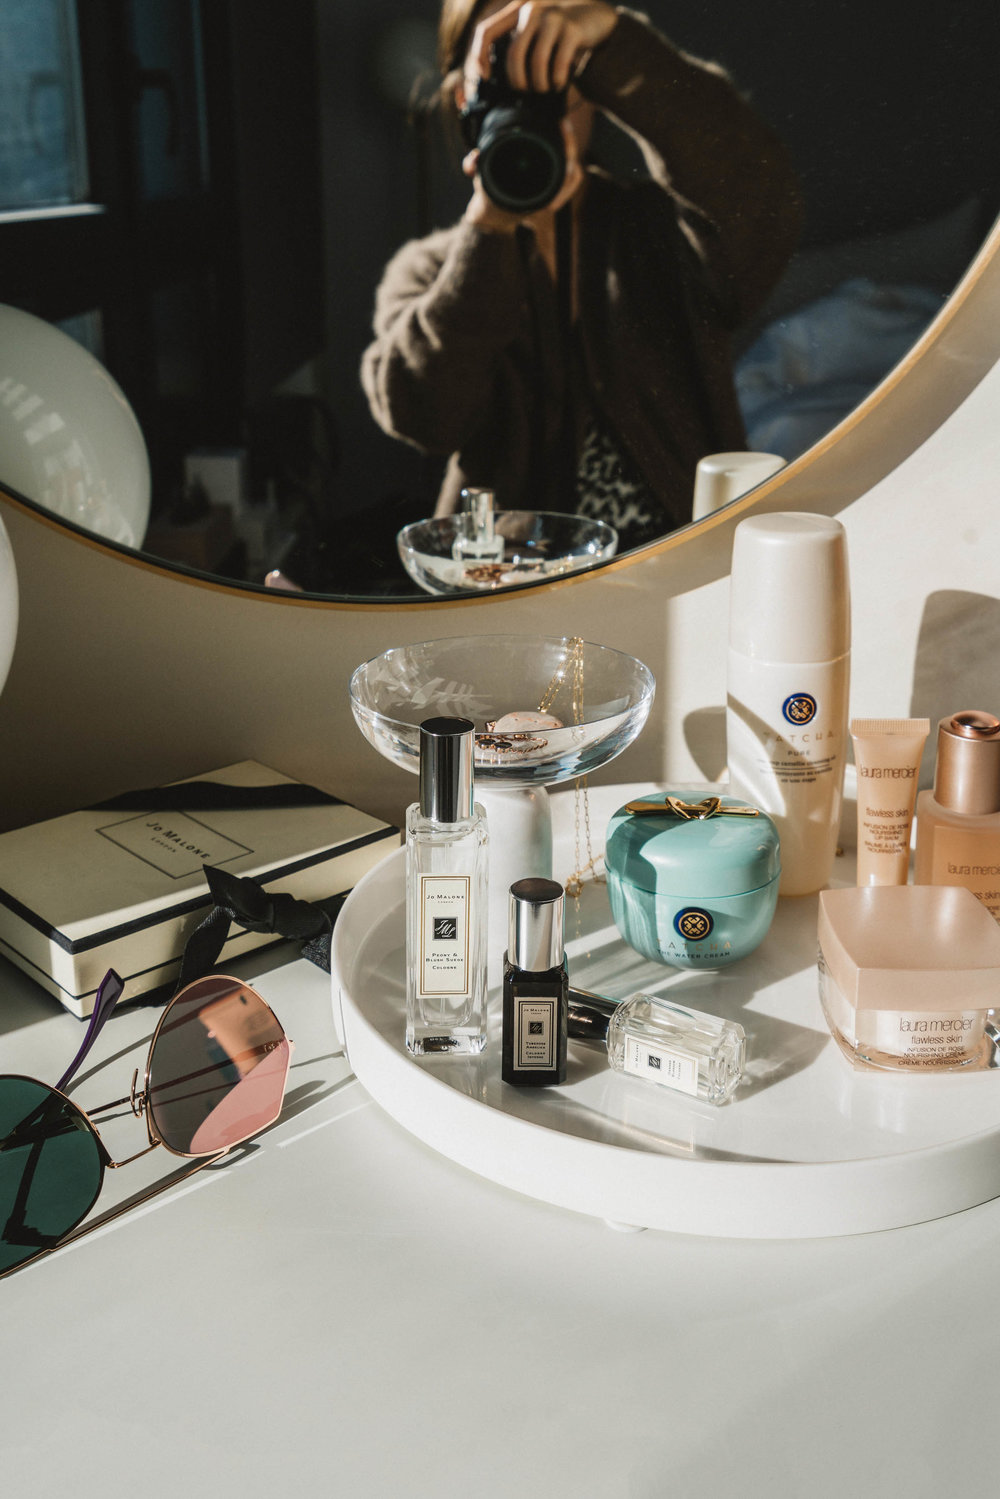 Fendi Sunglasses ,  Jo Malone Fragrances ,  Tatcha Cream ,  Tatcha Cleansing Oil ,  Laura Mercier Rose Collection